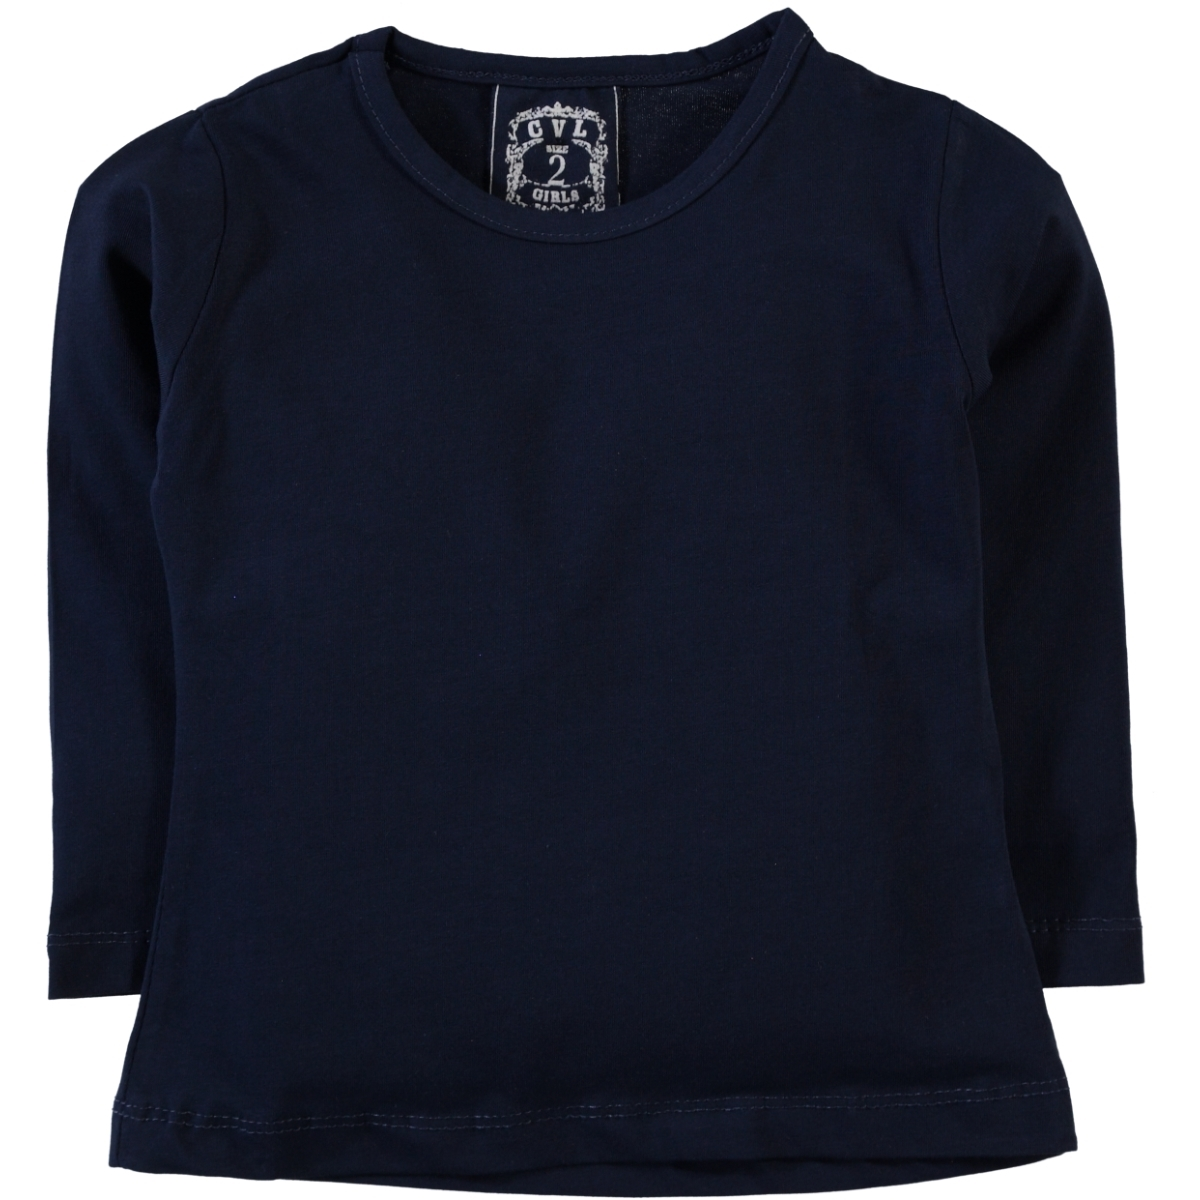 Cvl Kids Age 6-9 Girl Sweatshirt Navy Blue